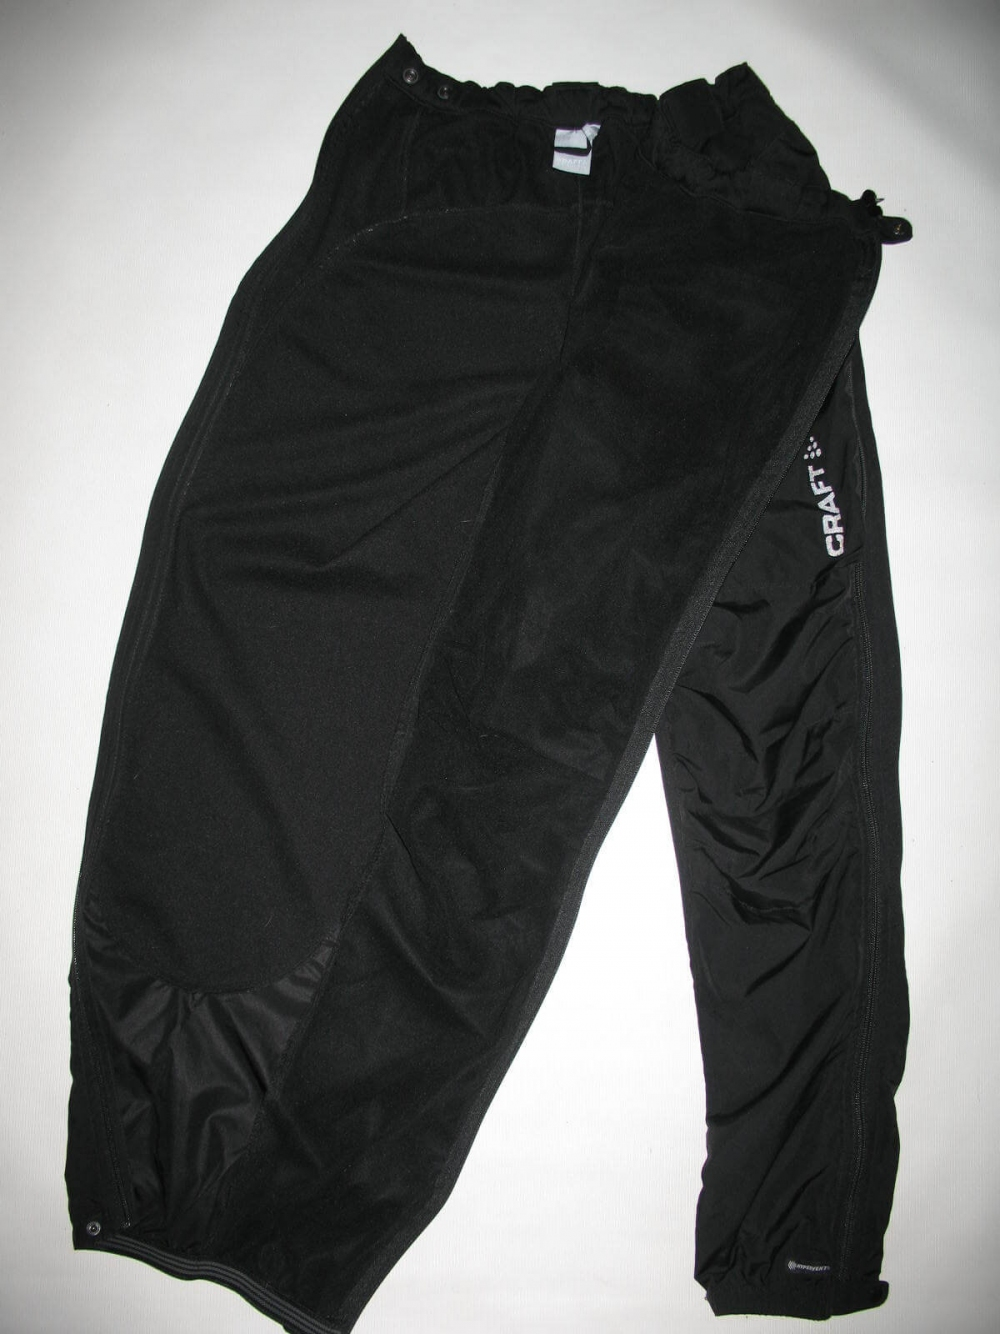 Брюки CRAFT hypervent pants (размер М) - 3